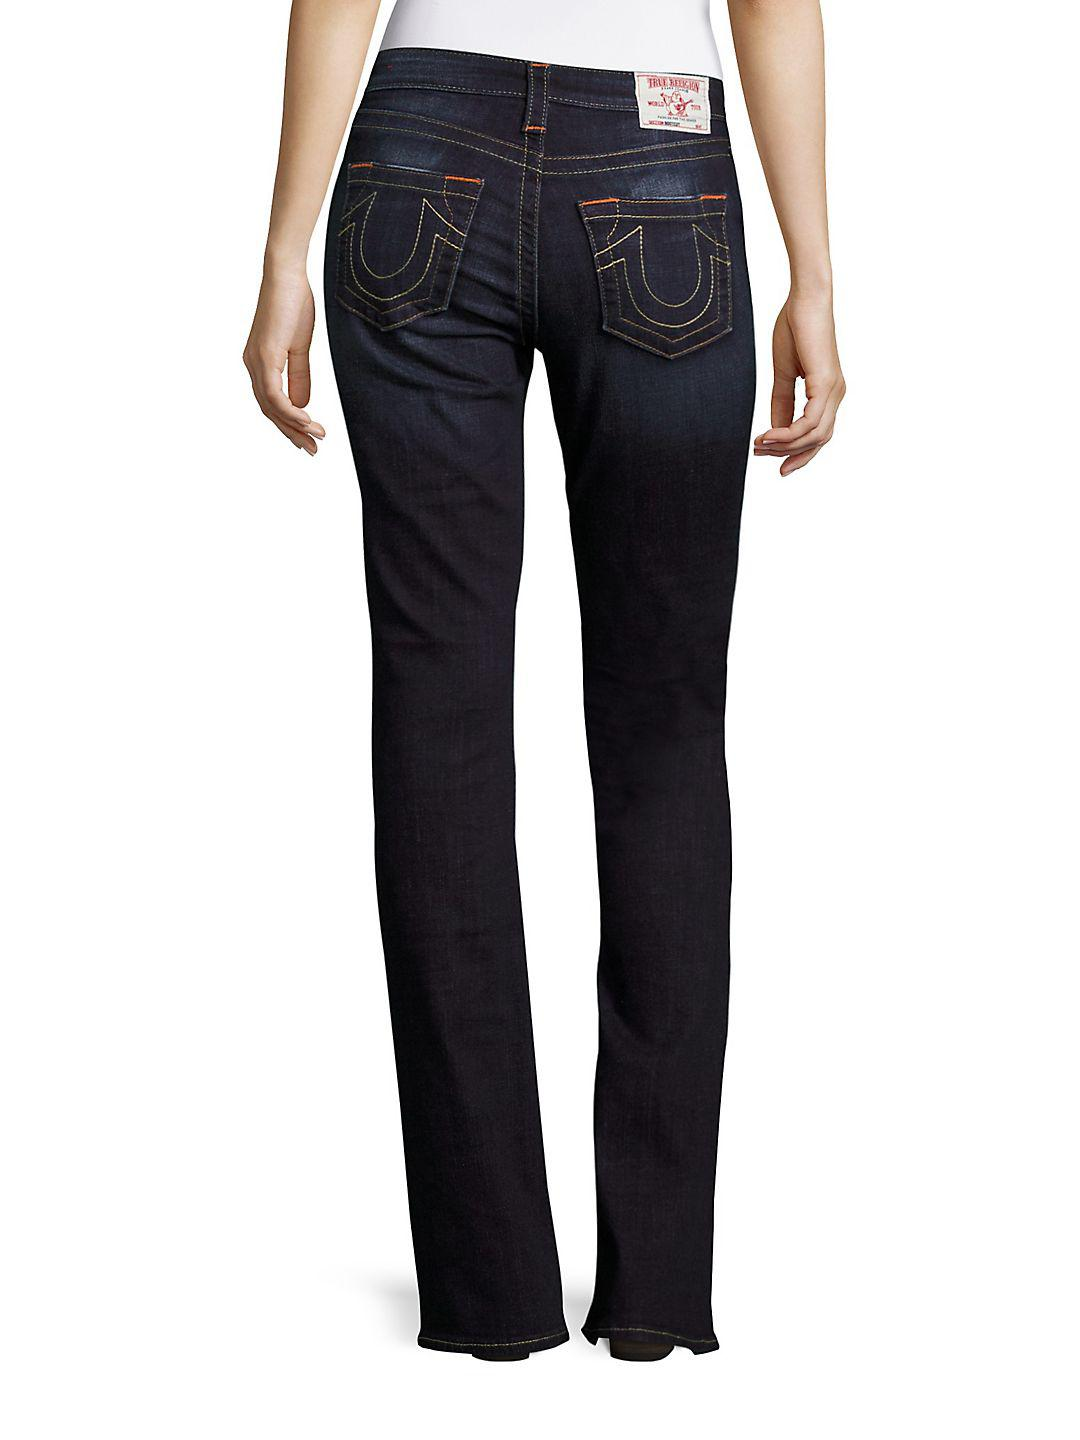 True Religion Denim Whiskered Bootcut Jeans in Blue